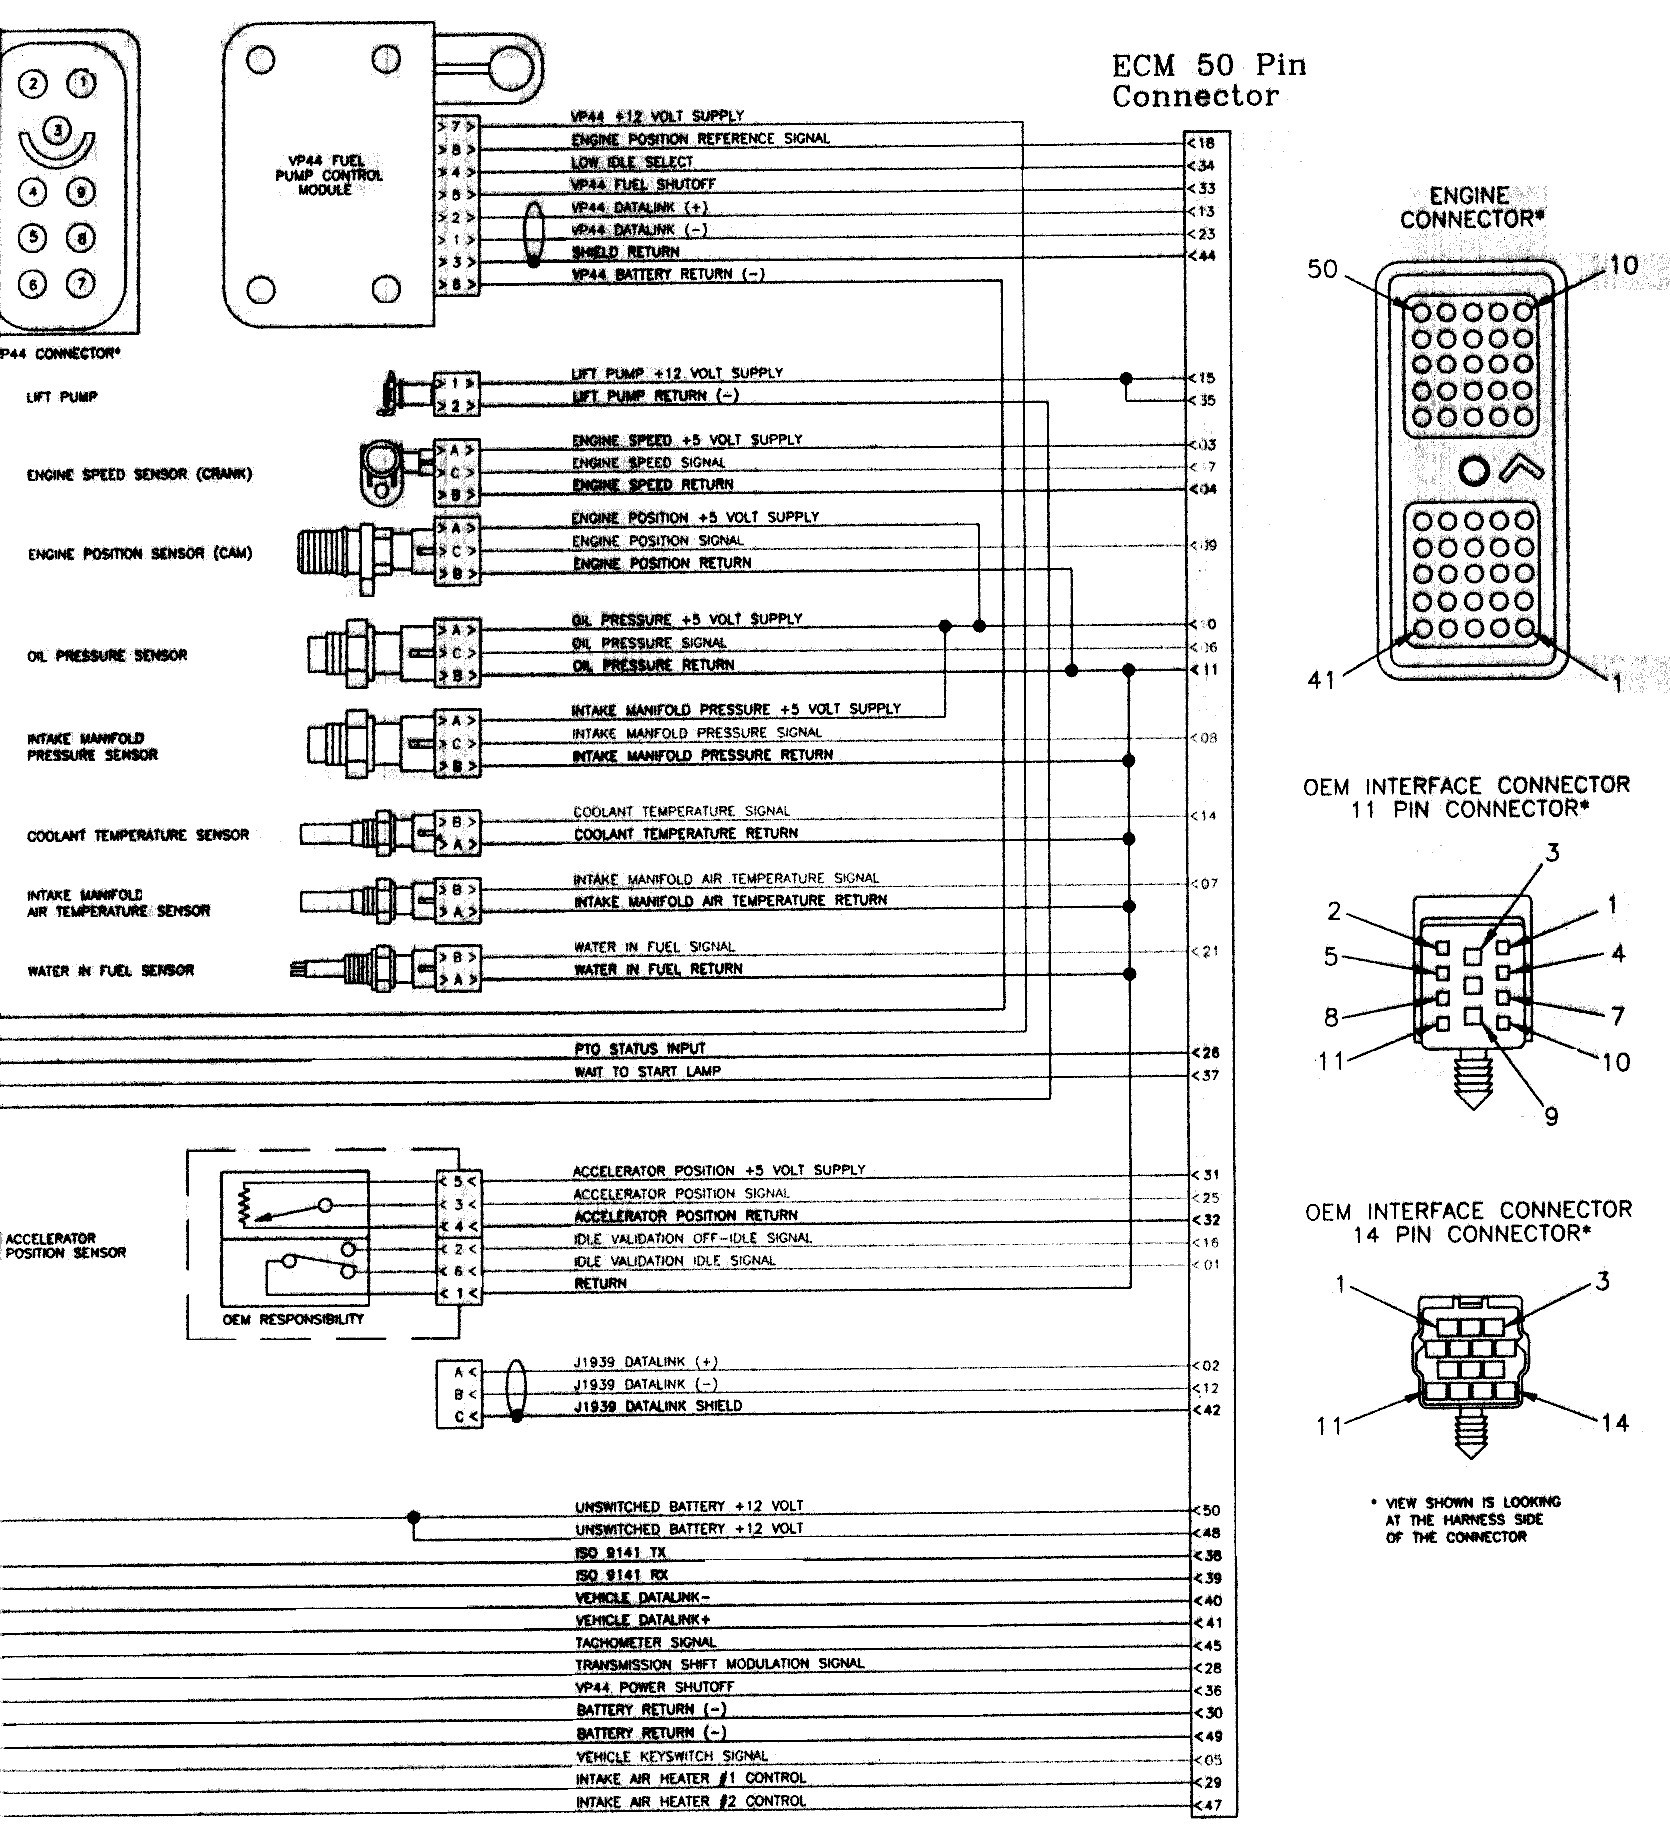 Stereo Wiring Diagram 99 Dodge Ram - All Diagram Schematics on